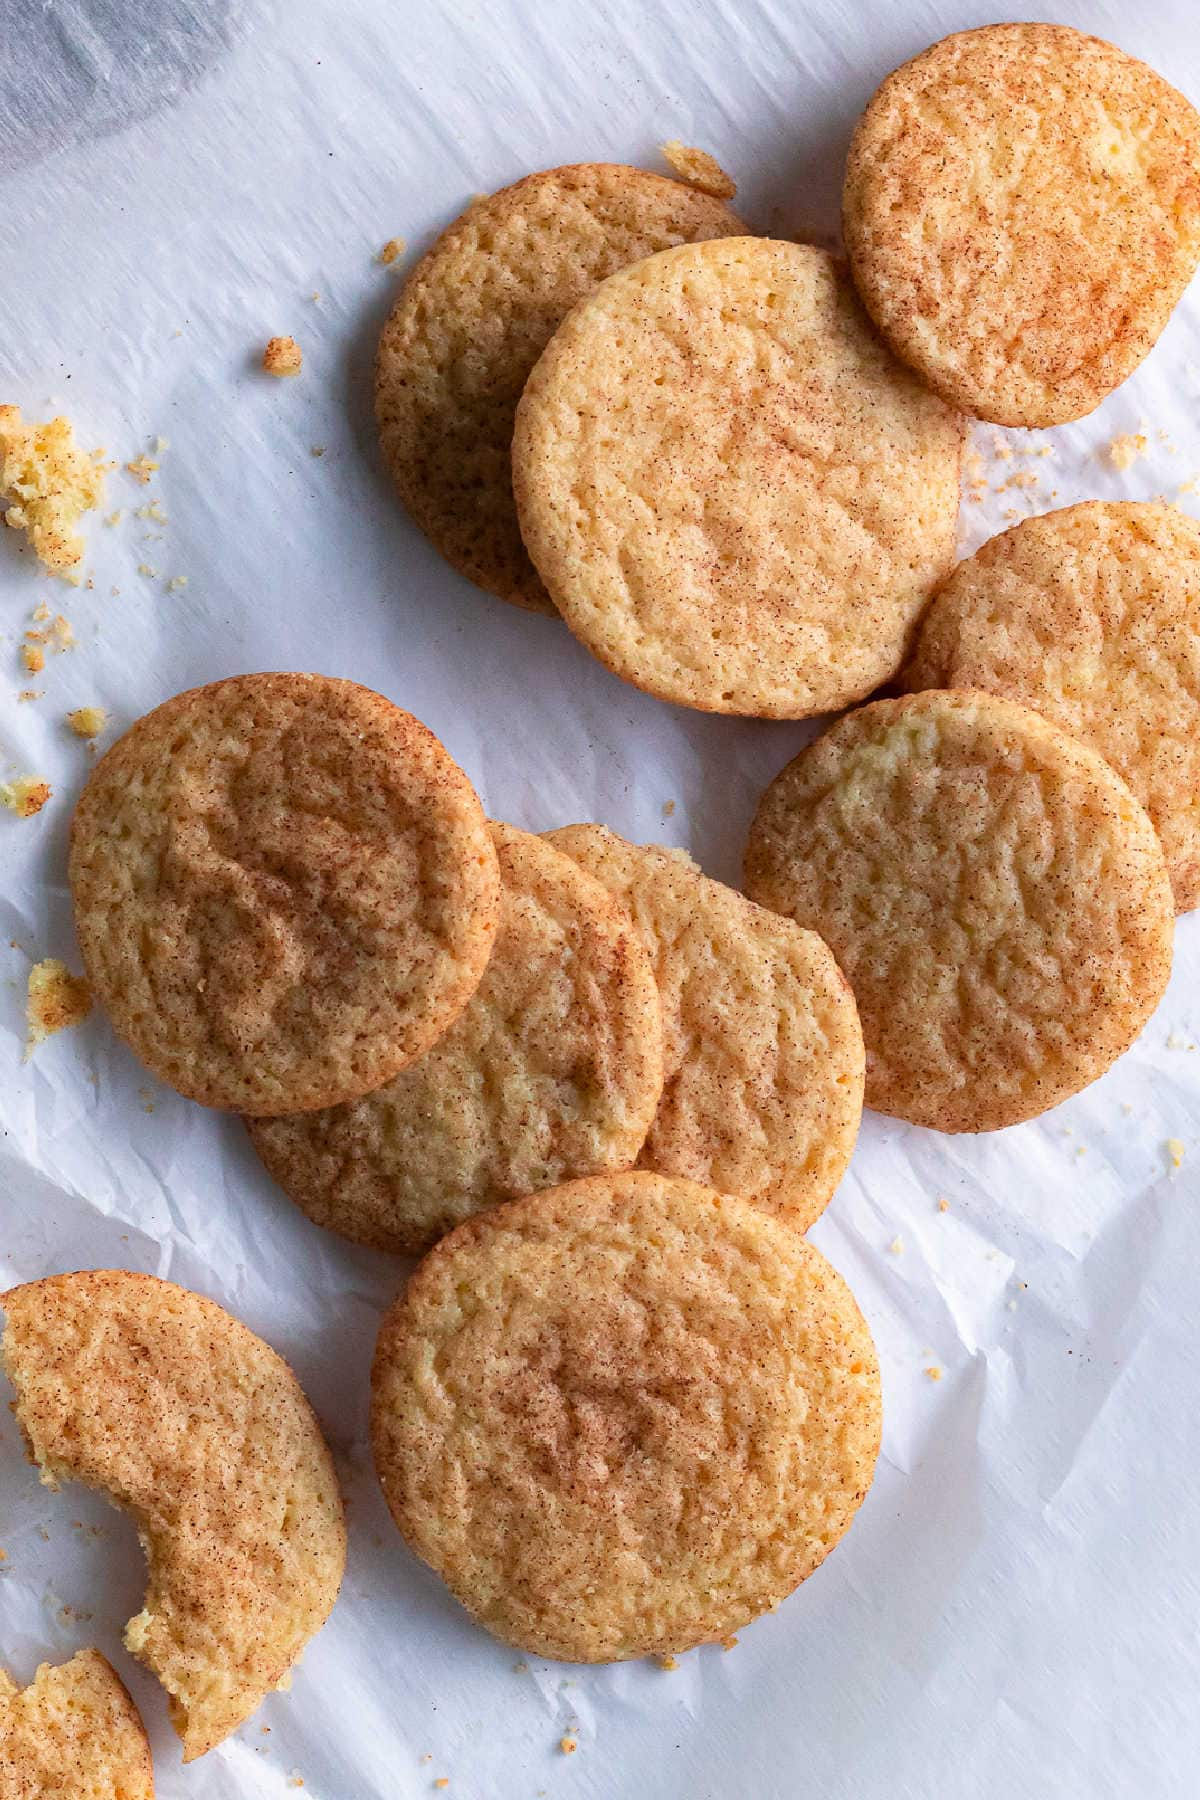 A pile of snickerdoodle cookies on parchment.